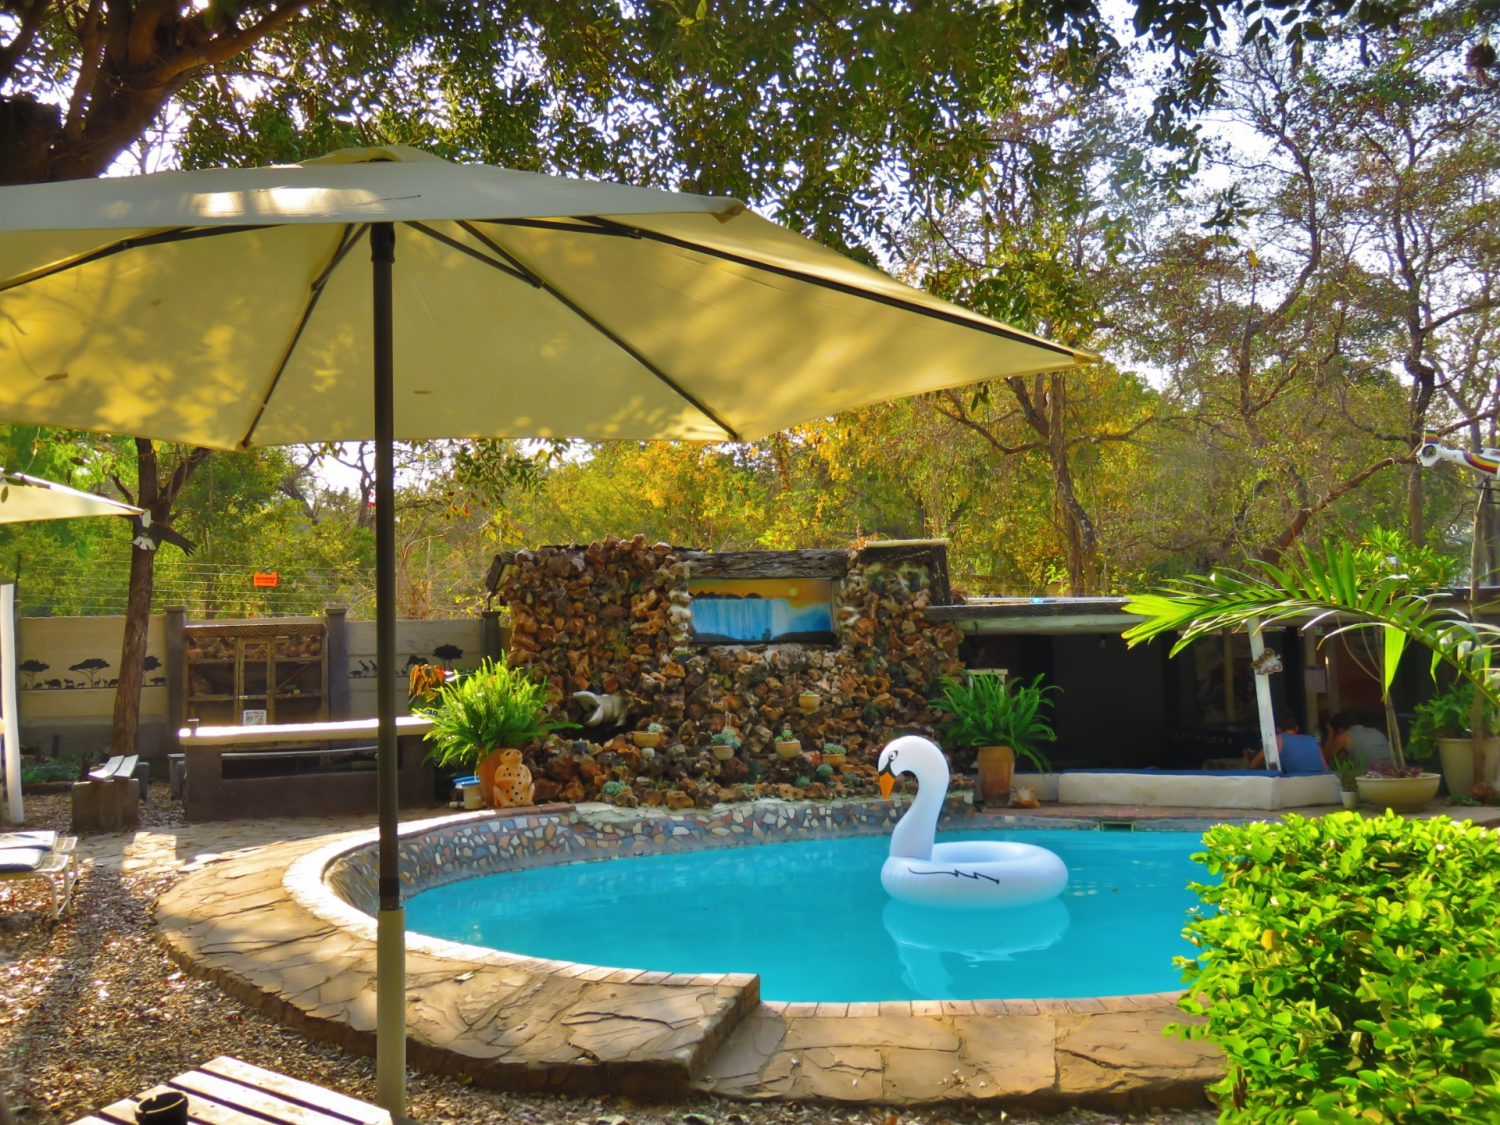 Backpackers Accommodation In Victoria Falls